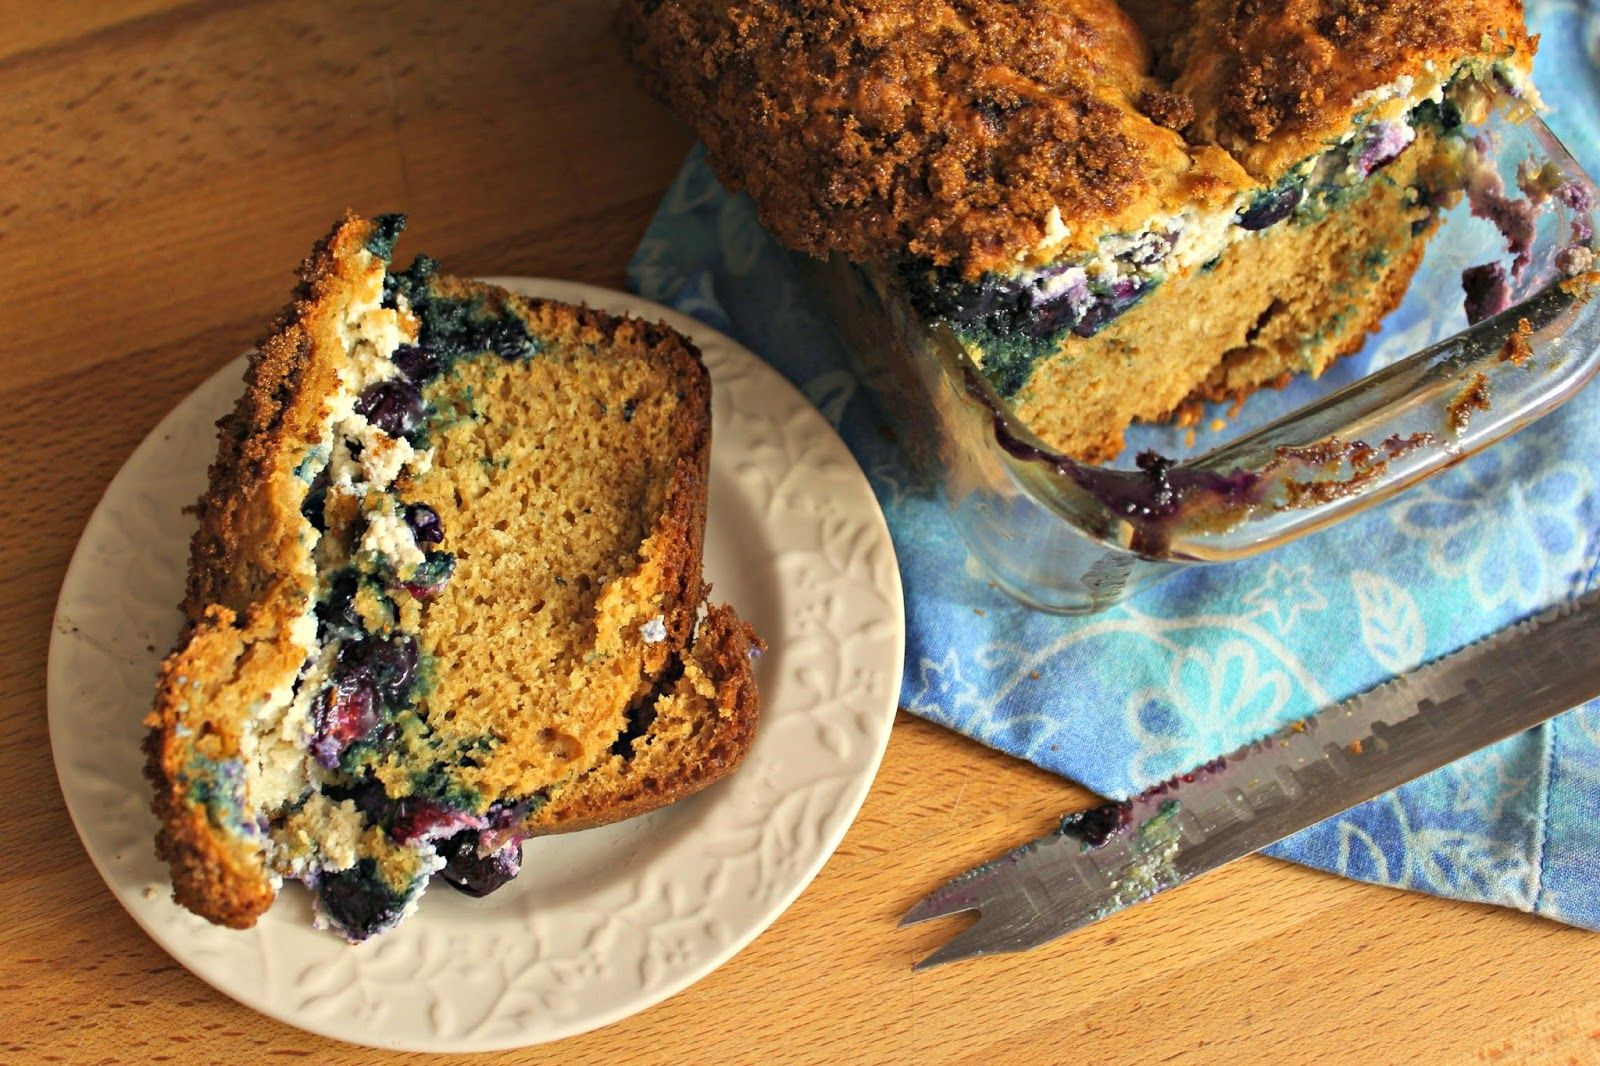 Blueberry Ricotta Coffee Cake: I'm not going to claim this is healthy, but it is worth noting there is only 1/4 cup (4 Tbs.) of butter, and no other fat (ok, some low fat milk, but that's negligible) except for the ricotta cheese (which can be low fat); you could also use (reduced fat) cream cheese in place of the ricotta. And for something as delicious as Blueberry Ricotta Coffee Cake? Totally worth it. From the blogger and culinary school student saraheatsaustin.com